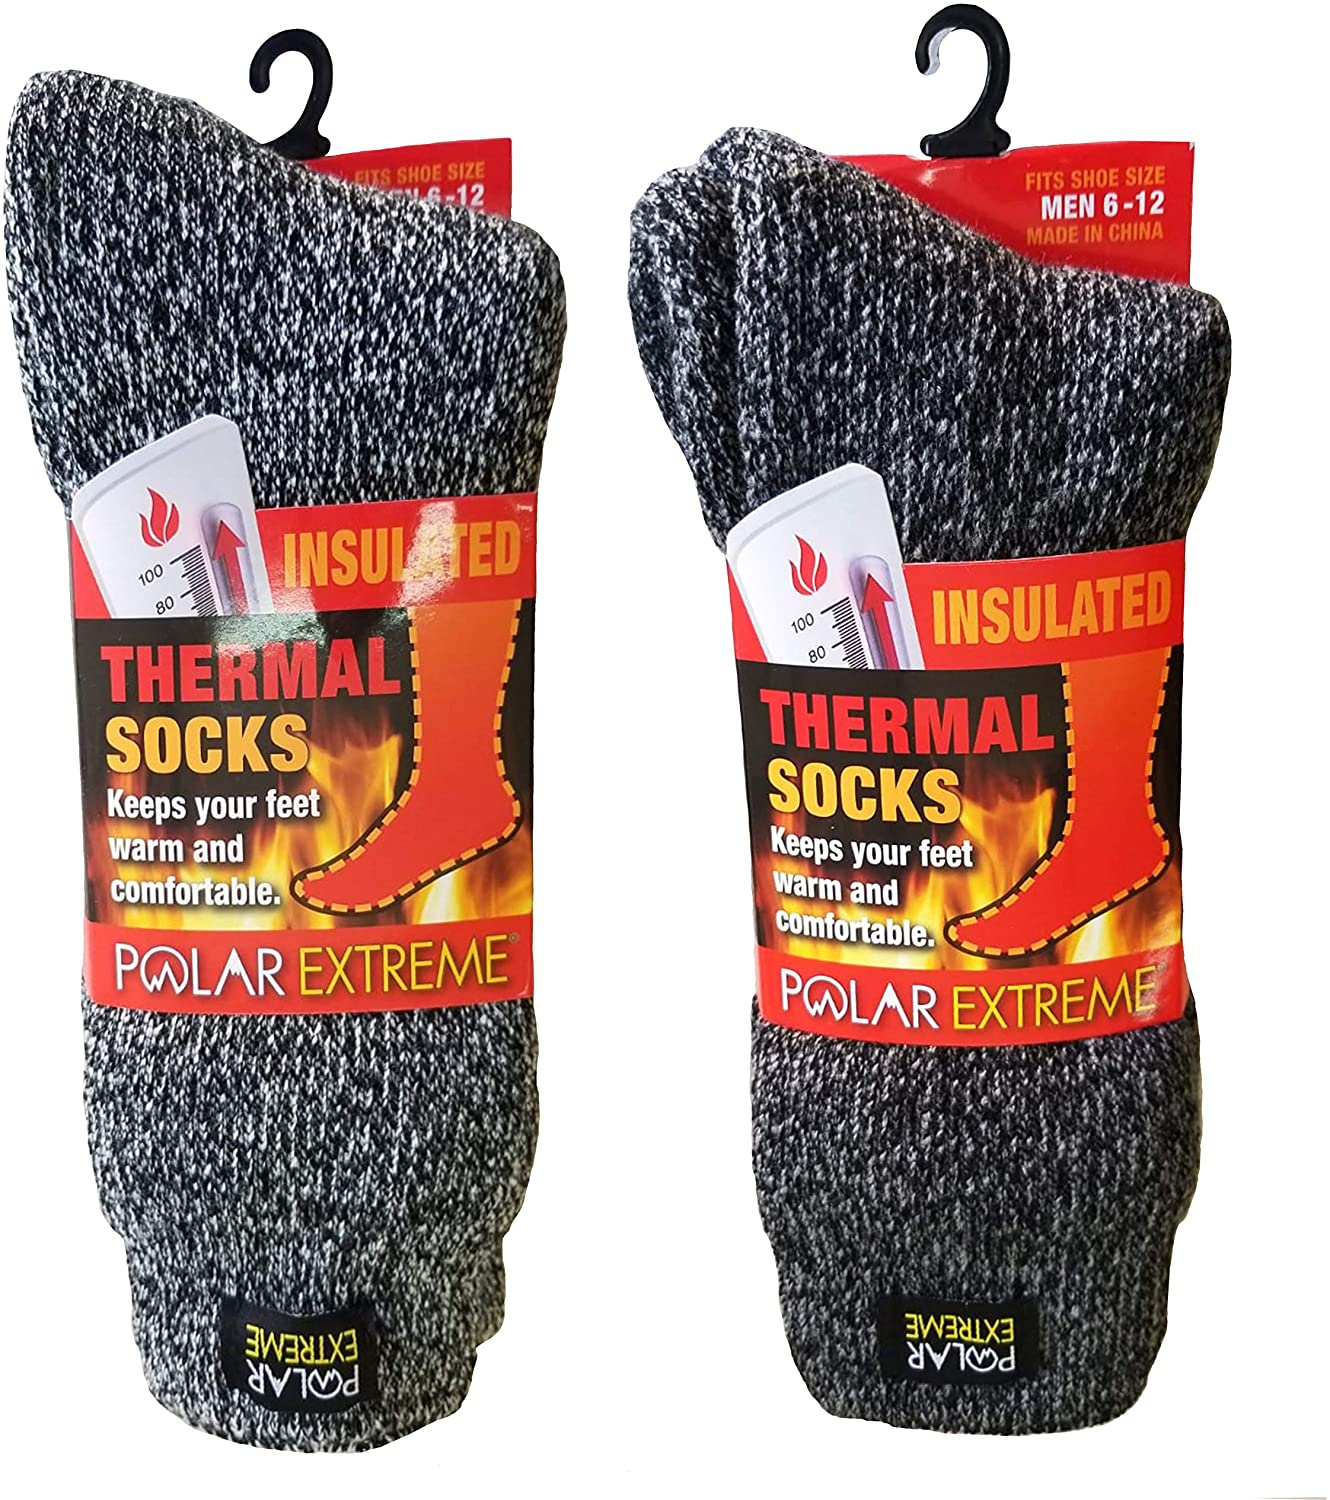 Polar Extreme Men's Thermal Sock Pack of 2